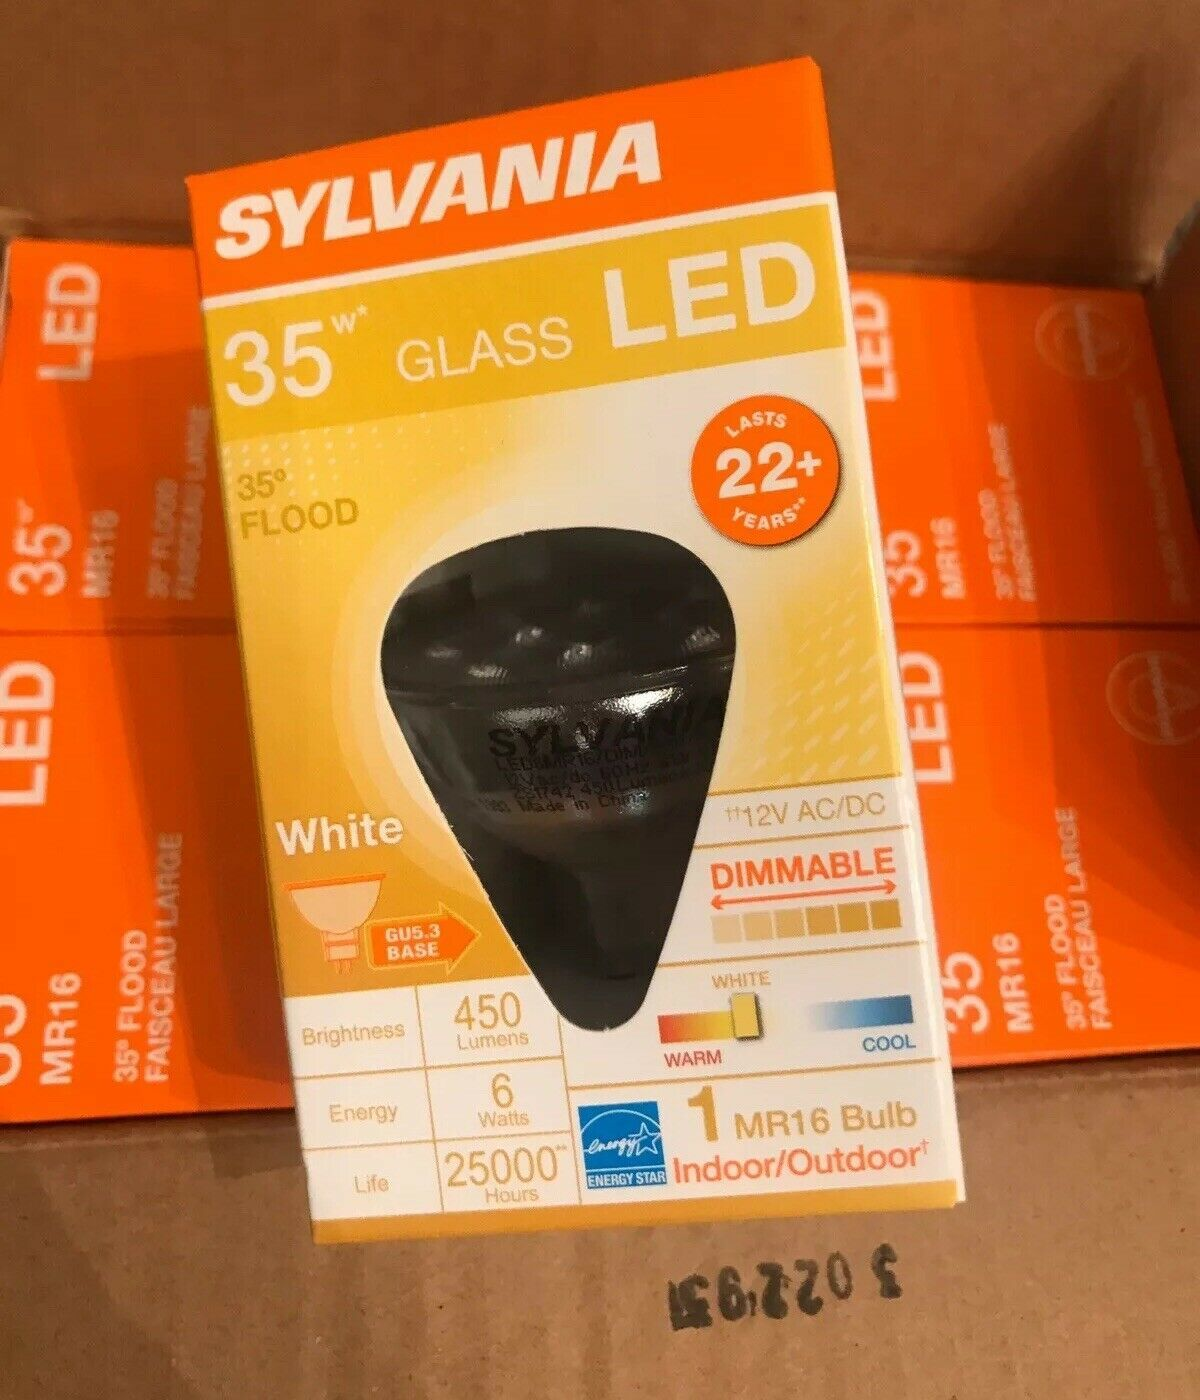 Primary image for Sylvania 35 Watt Glass LED Flood Bulbs 6 Pack MR16 New Lot Of 6